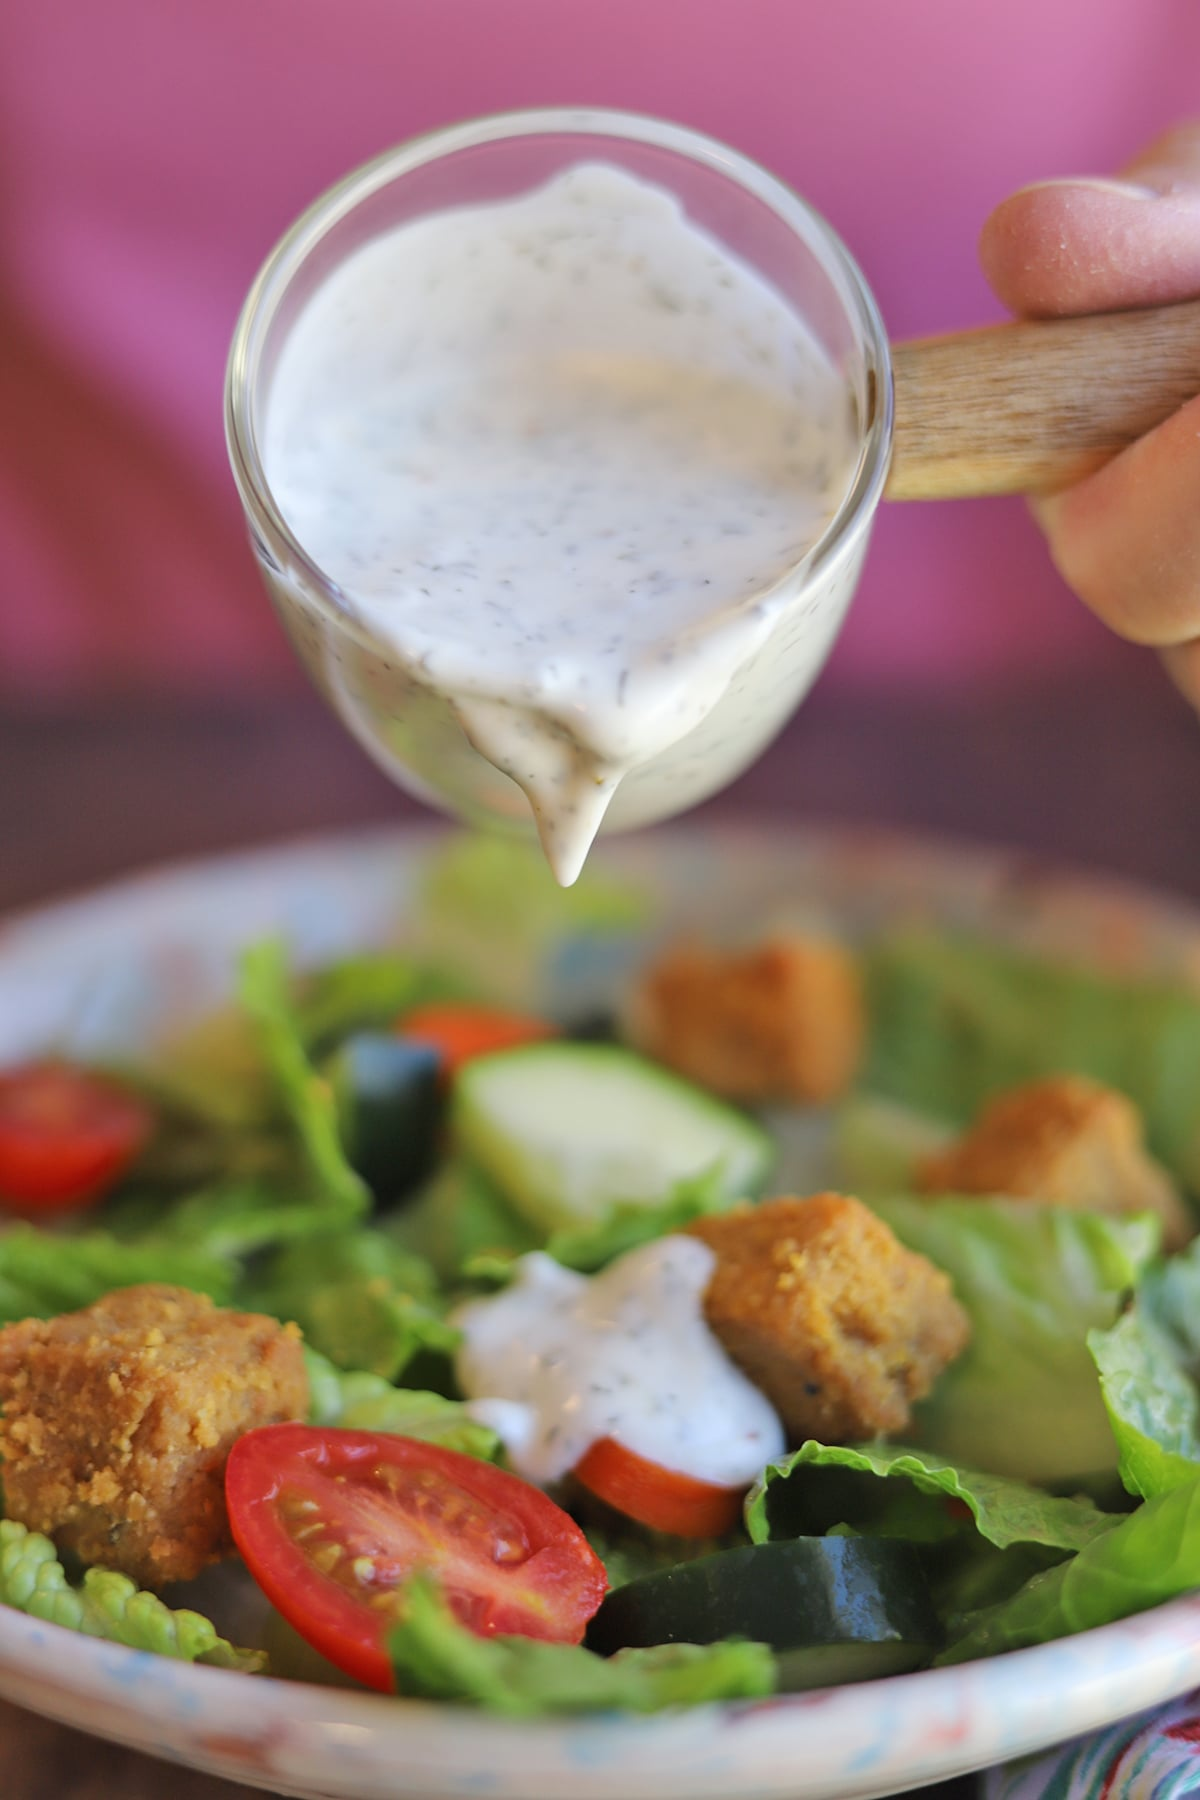 Dressing being poured over salad.